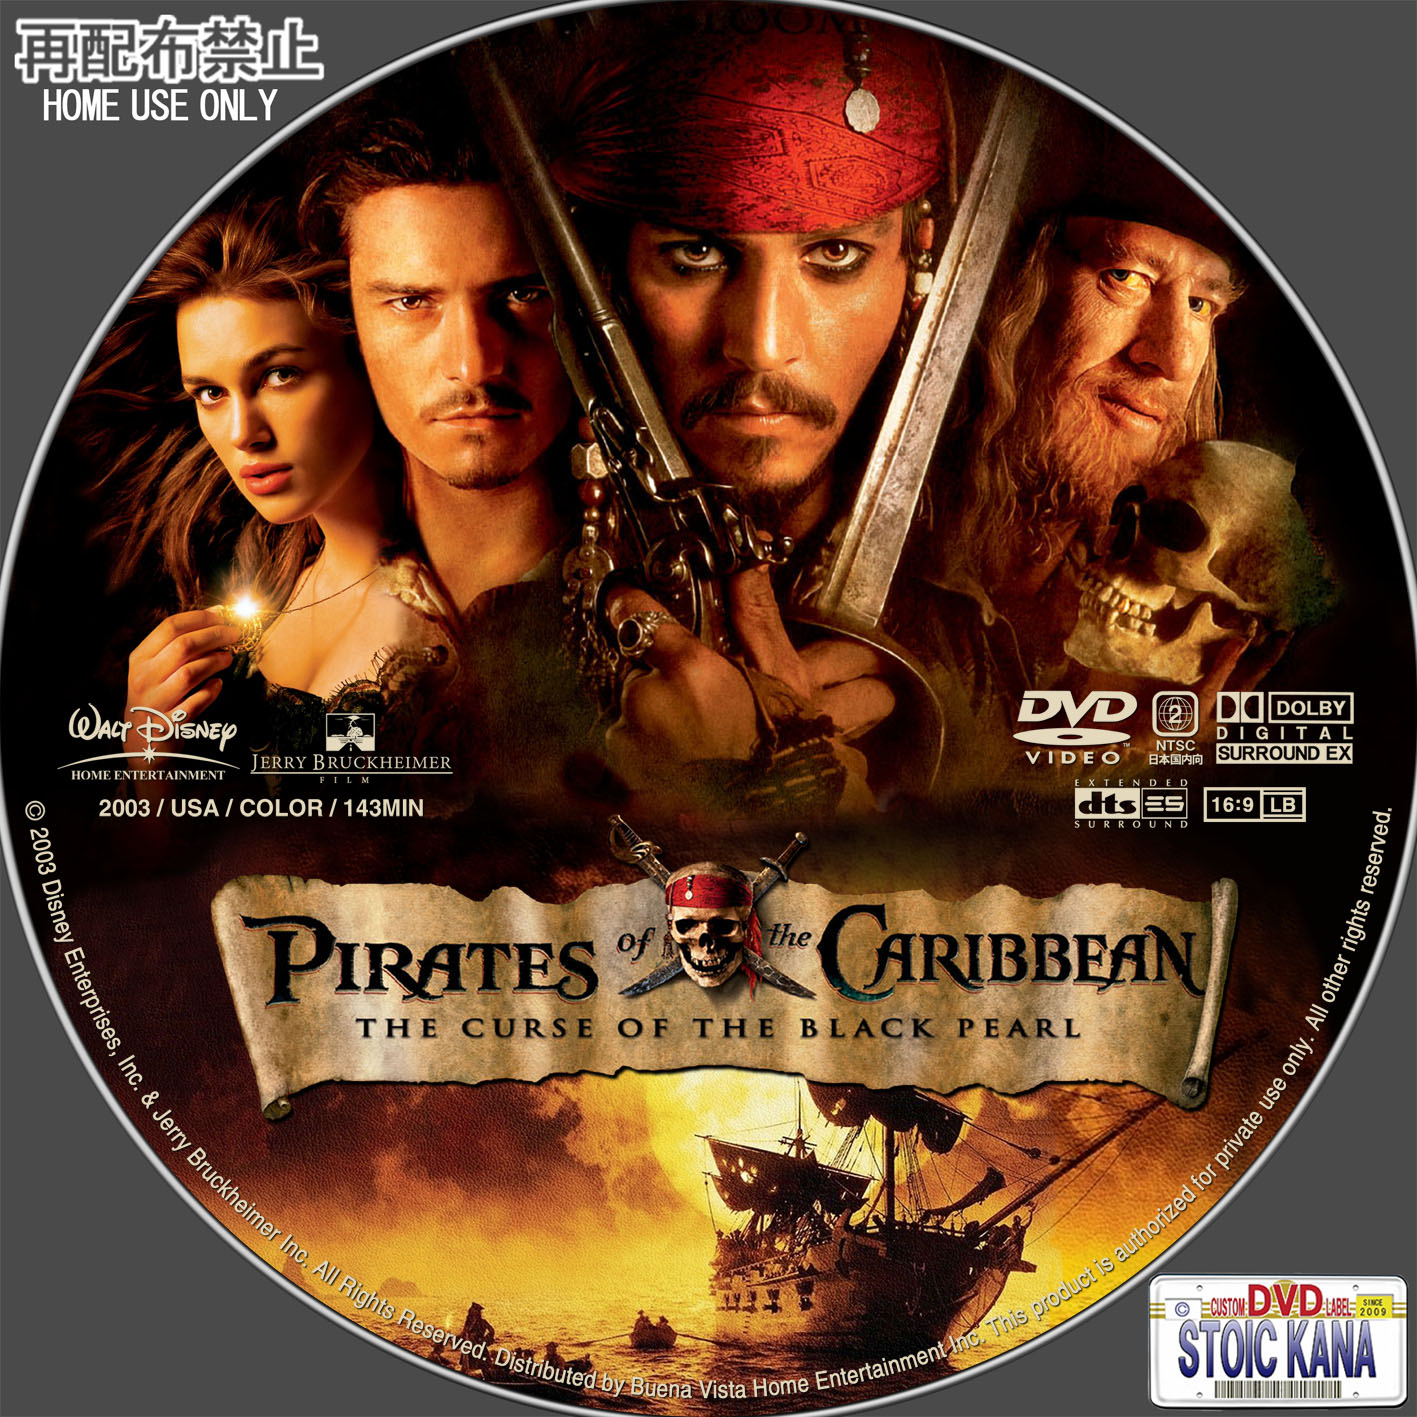 pirates of the caribbean the curse of the black pearl Listen to songs from the album pirates of the caribbean: the curse of the black pearl (original soundtrack), including fog bound, the medallion calls, the black pearl, and many more buy the album for $799 songs start at $099 free with apple music subscription.